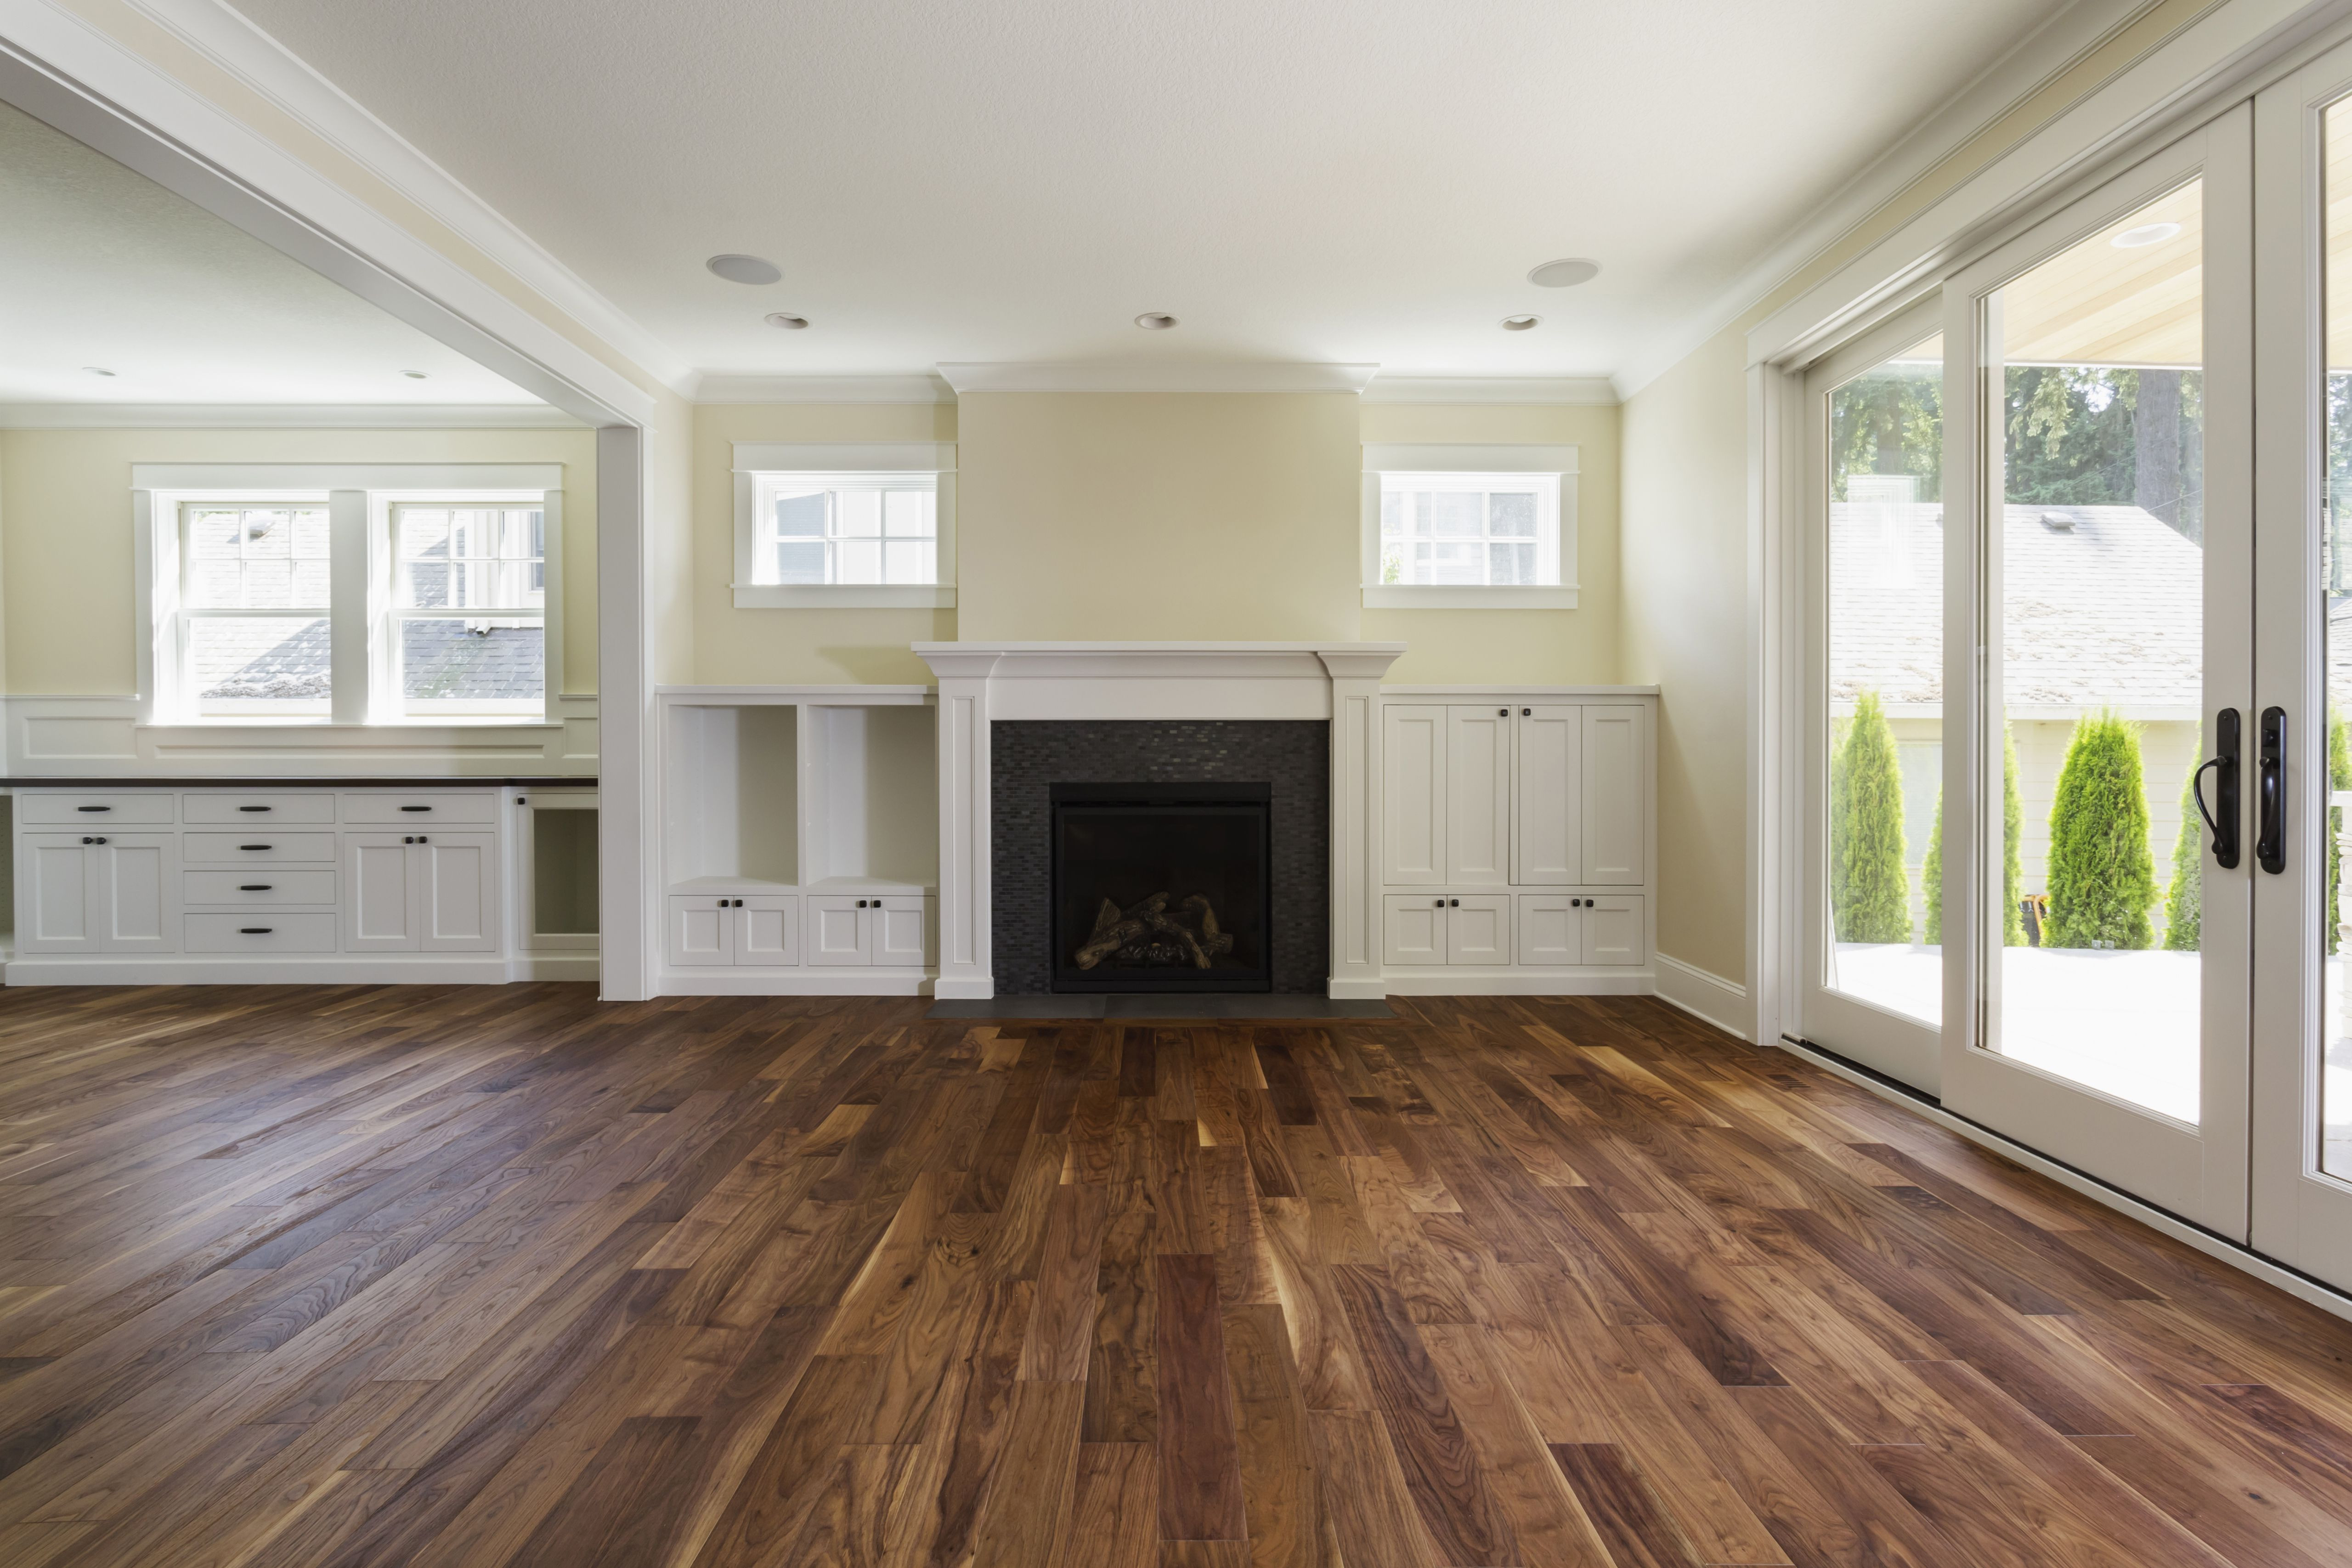 engineered hardwood flooring prices canada of the pros and cons of prefinished hardwood flooring for fireplace and built in shelves in living room 482143011 57bef8e33df78cc16e035397